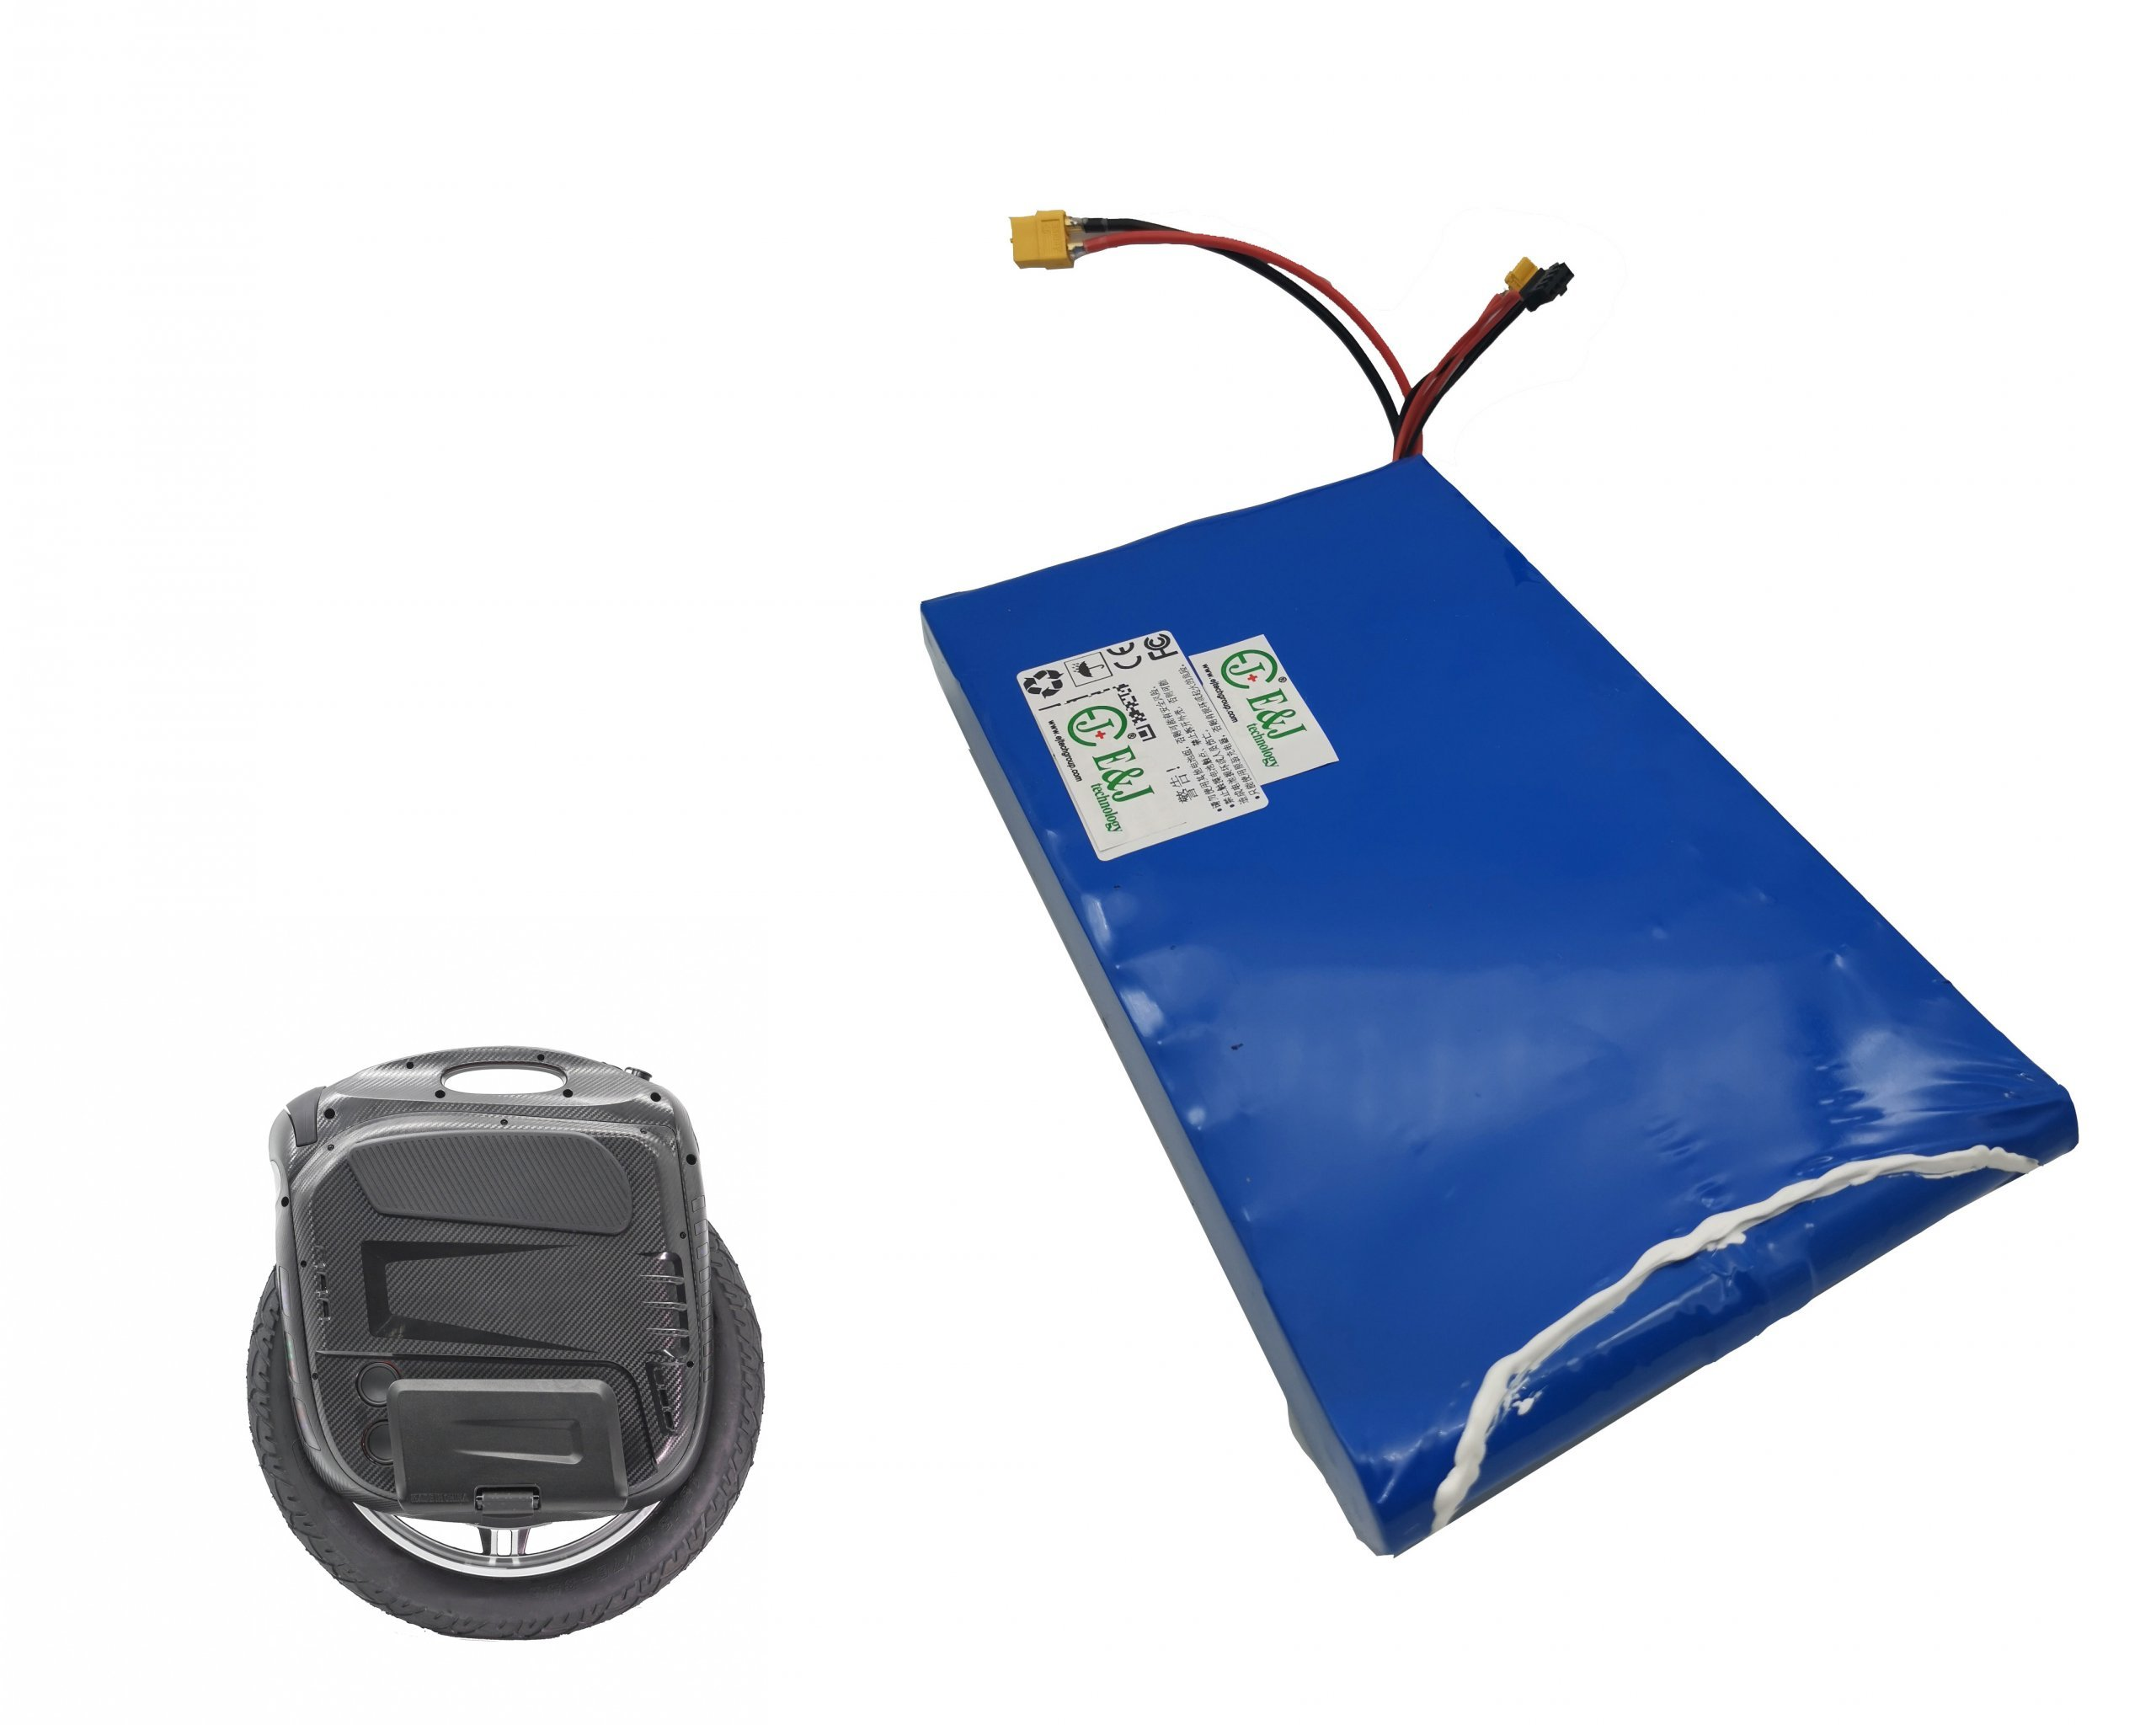 100V 24S 21700 lg M50T 900WH Lithium battery pack for One Wheel Electric unicycle scooter battery 7